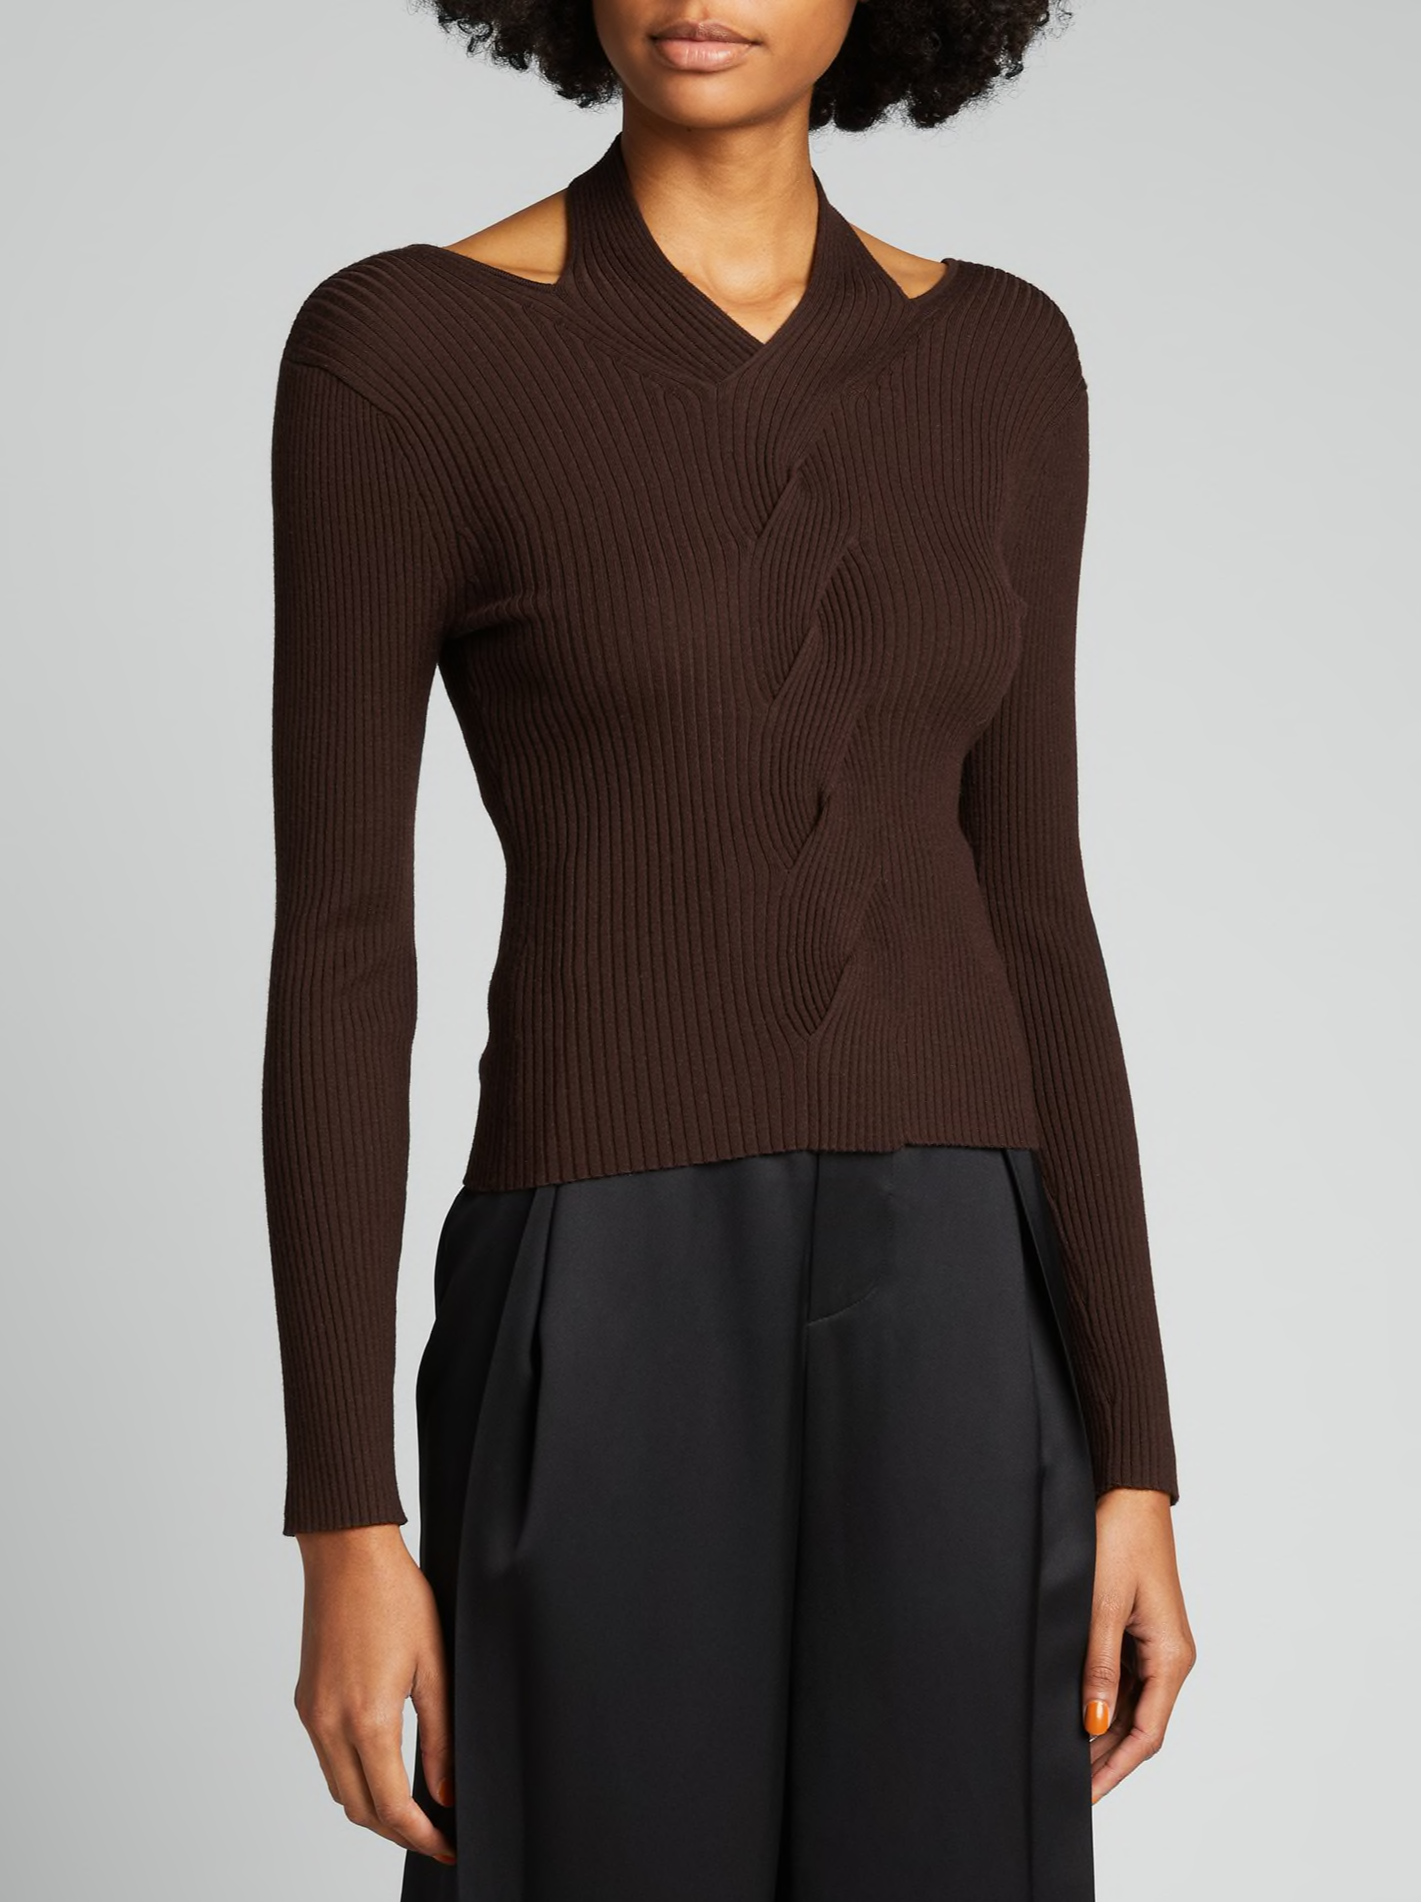 CLOVE LEAH RIBBED KNIT